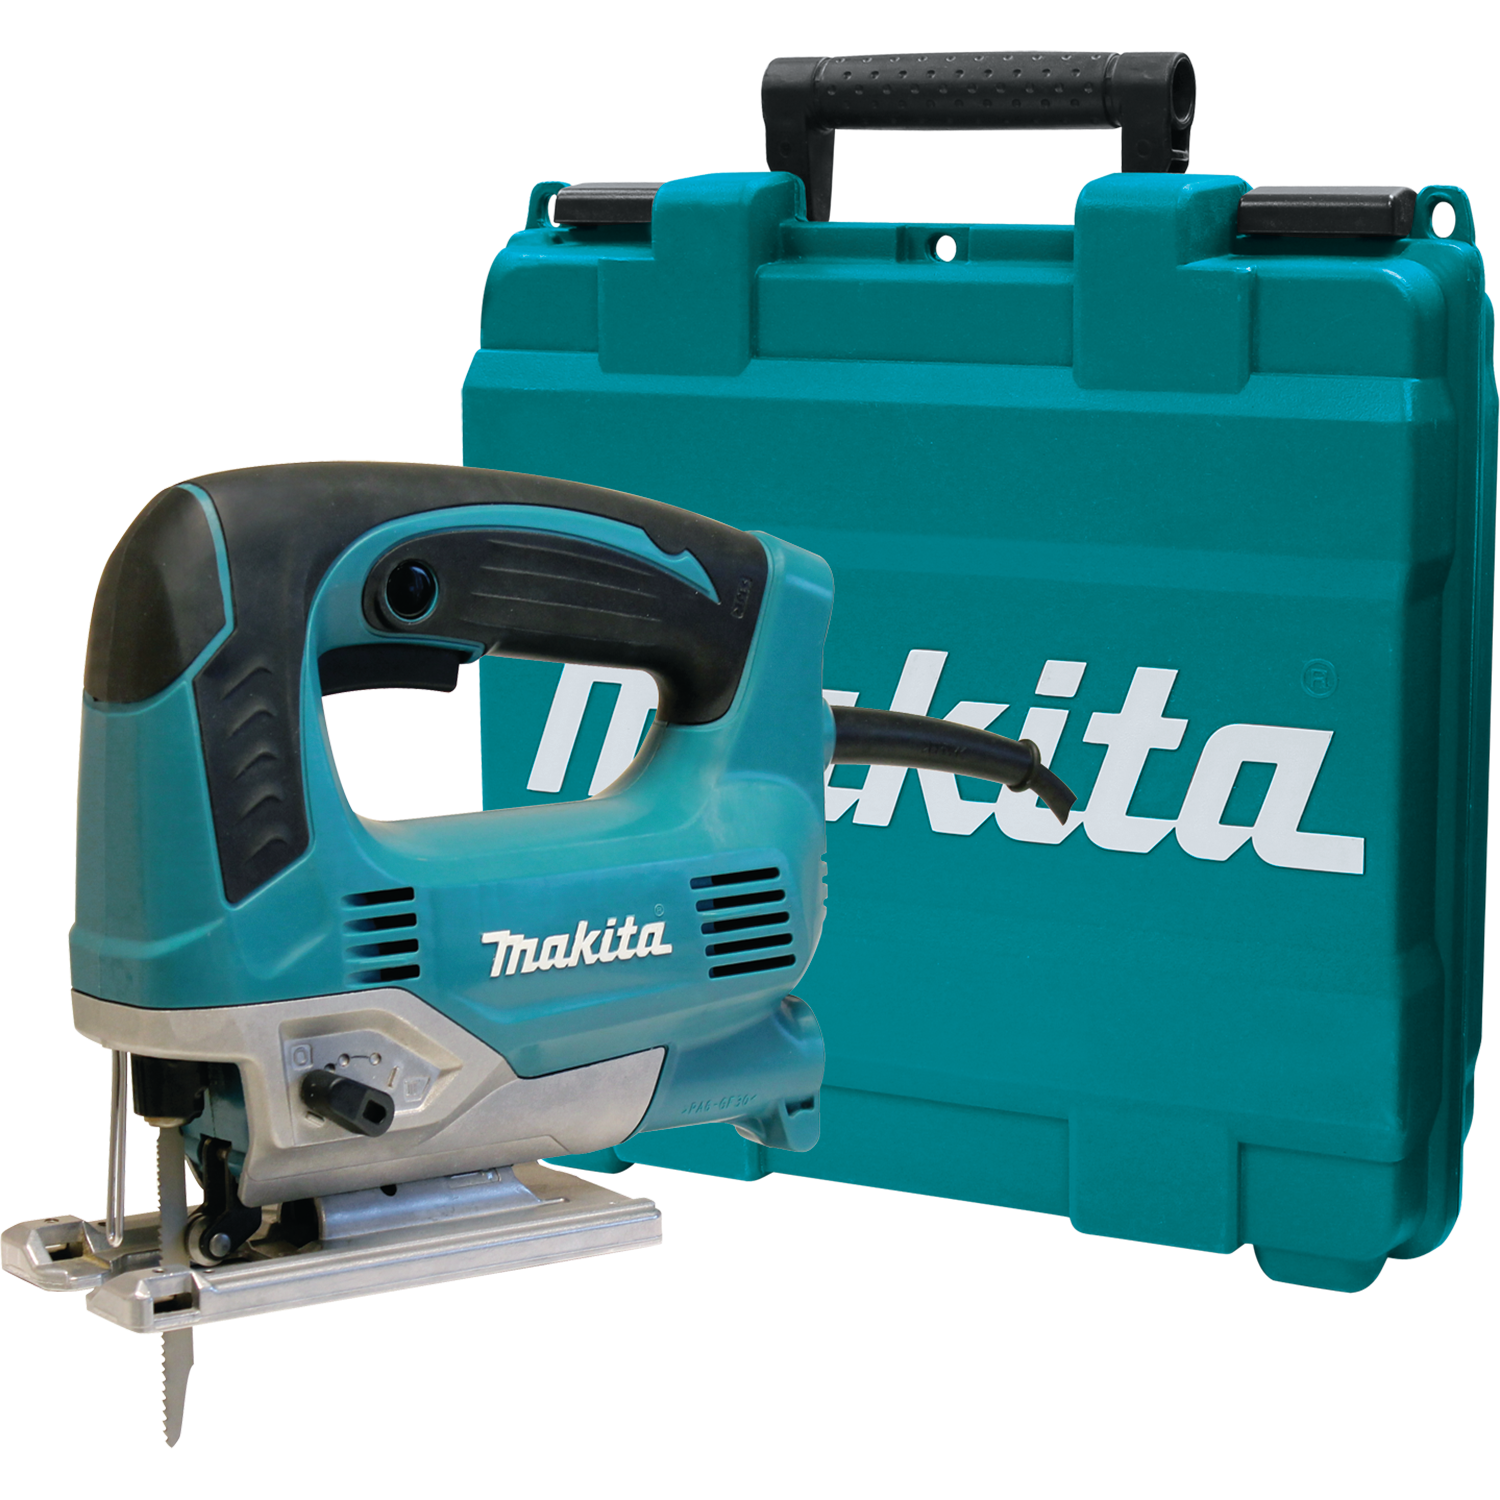 Makita usa product details jv0600k jv0600k greentooth Gallery